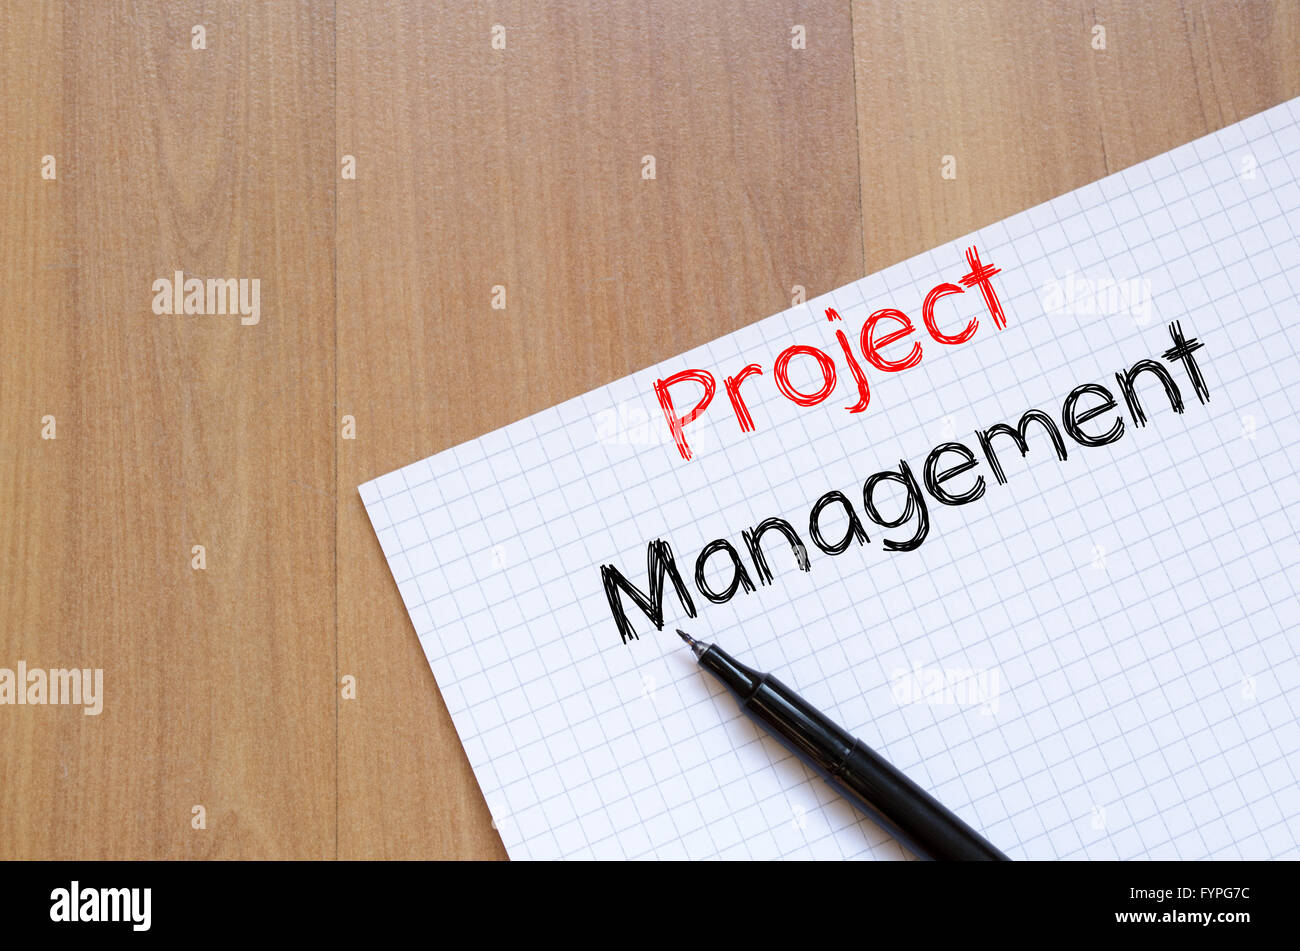 Project management write on notebook - Stock Image